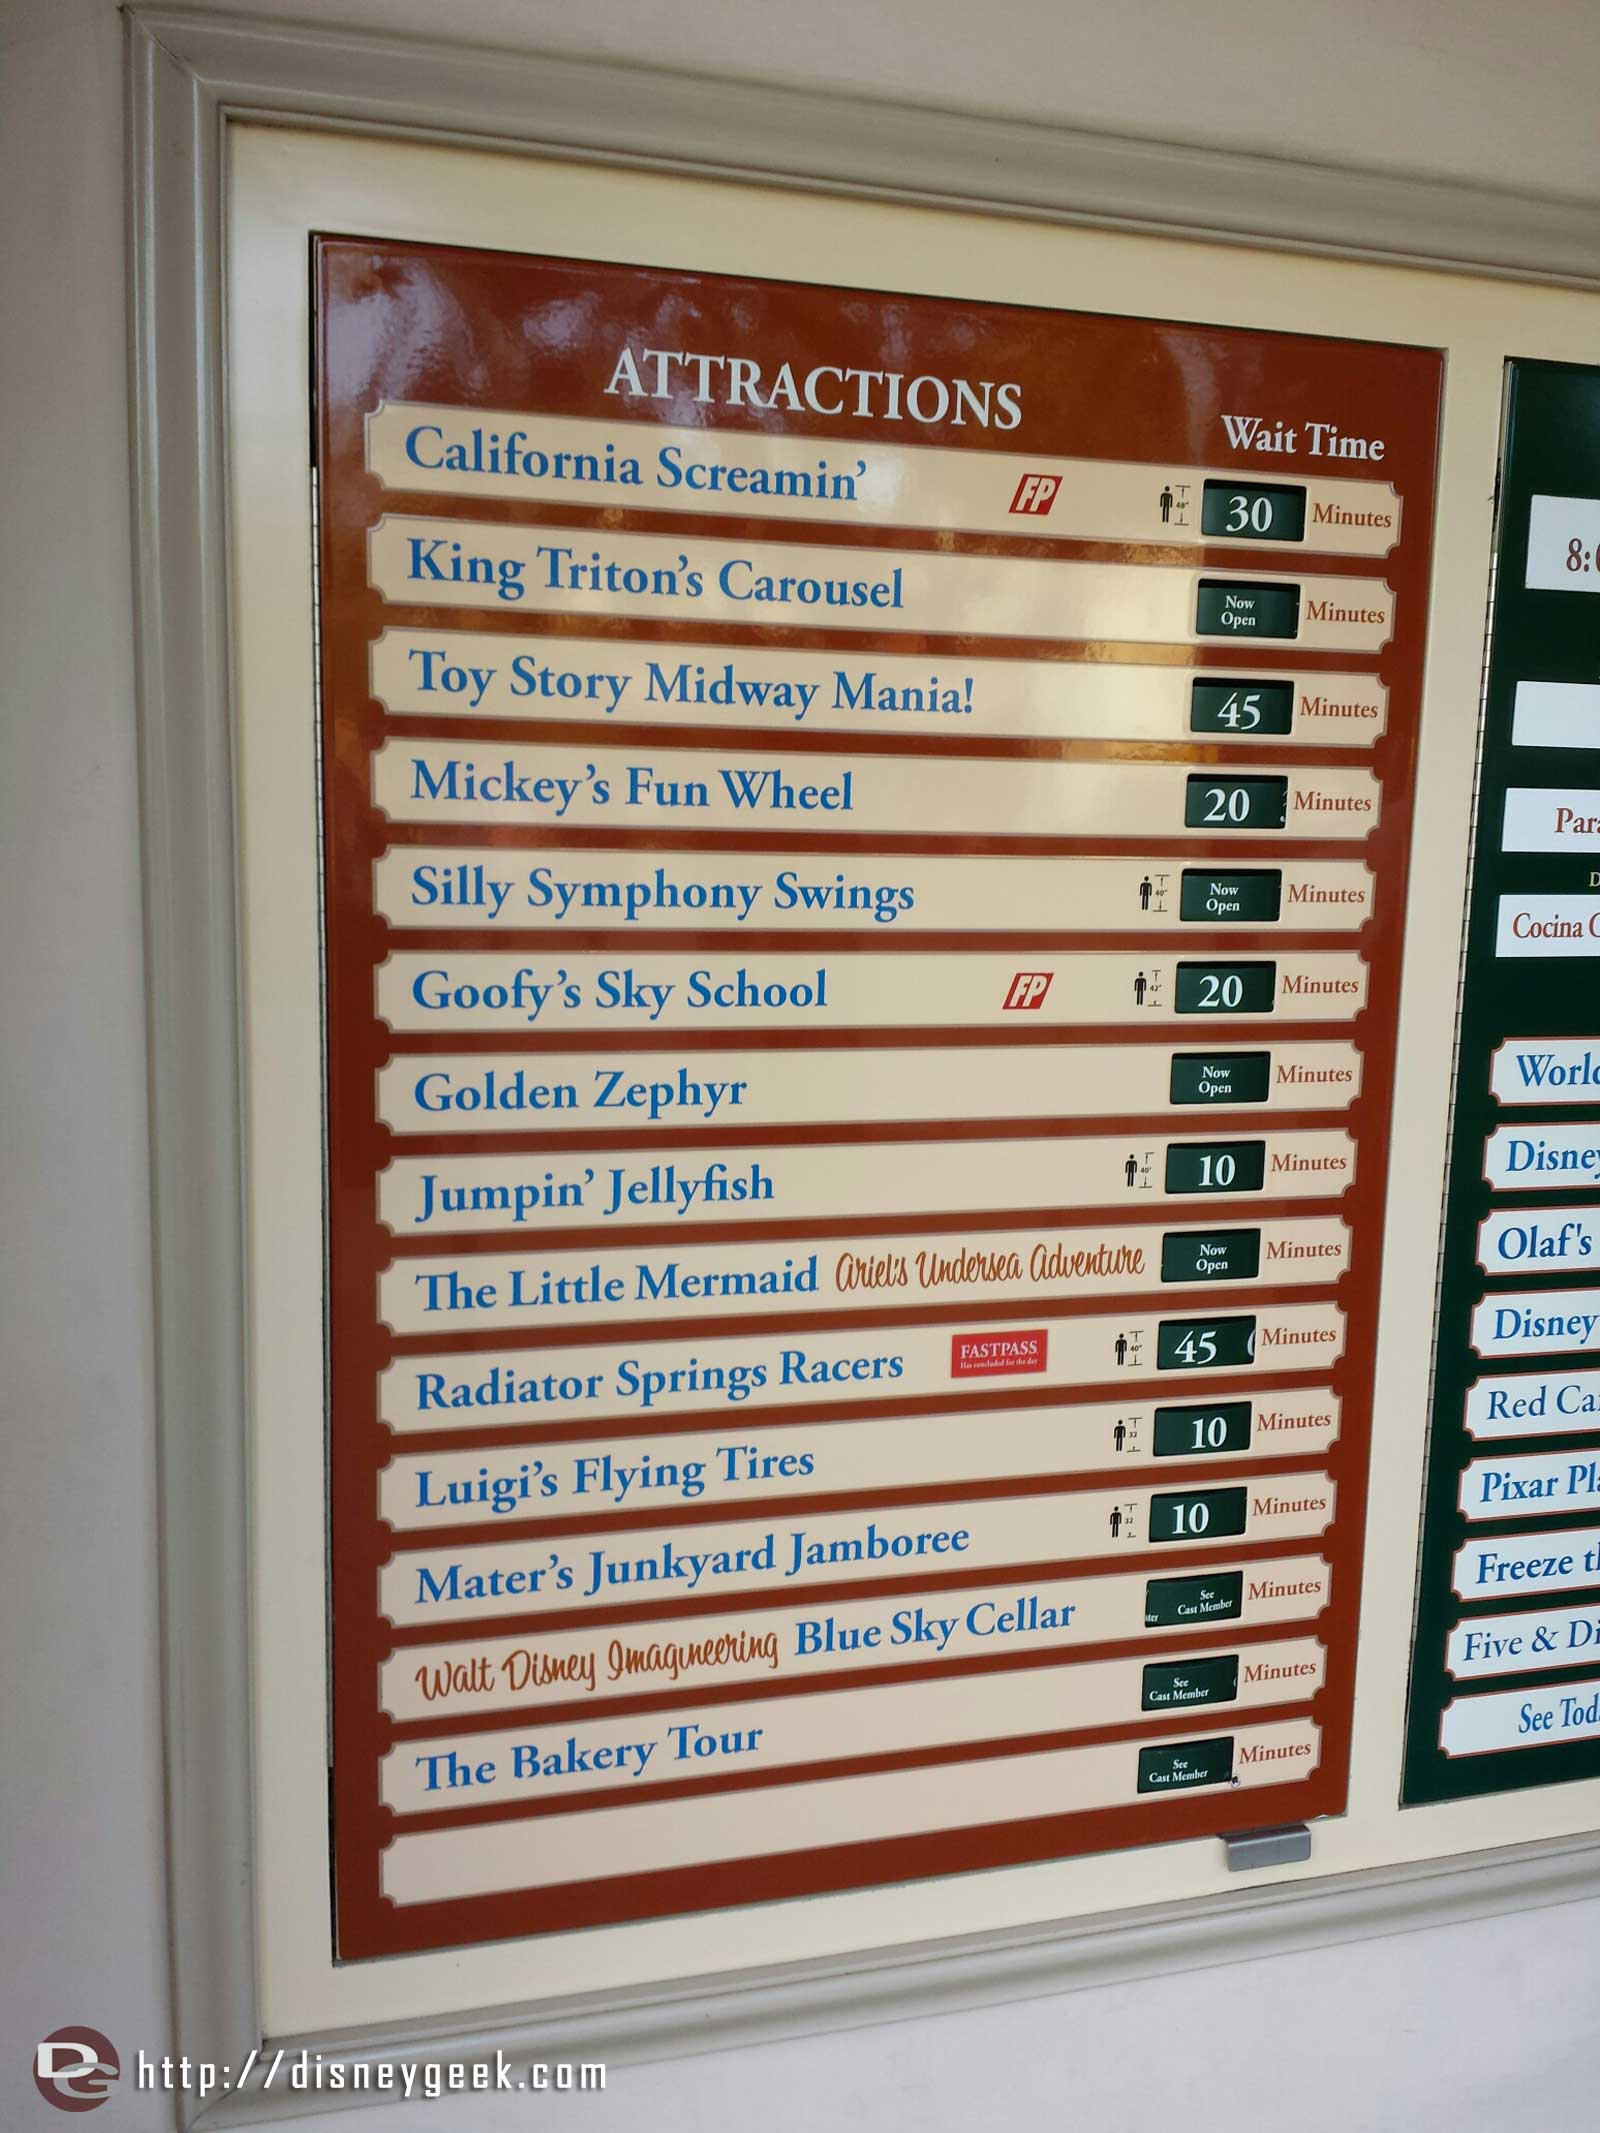 Some Disney California Adventure waits as of 2:00pm